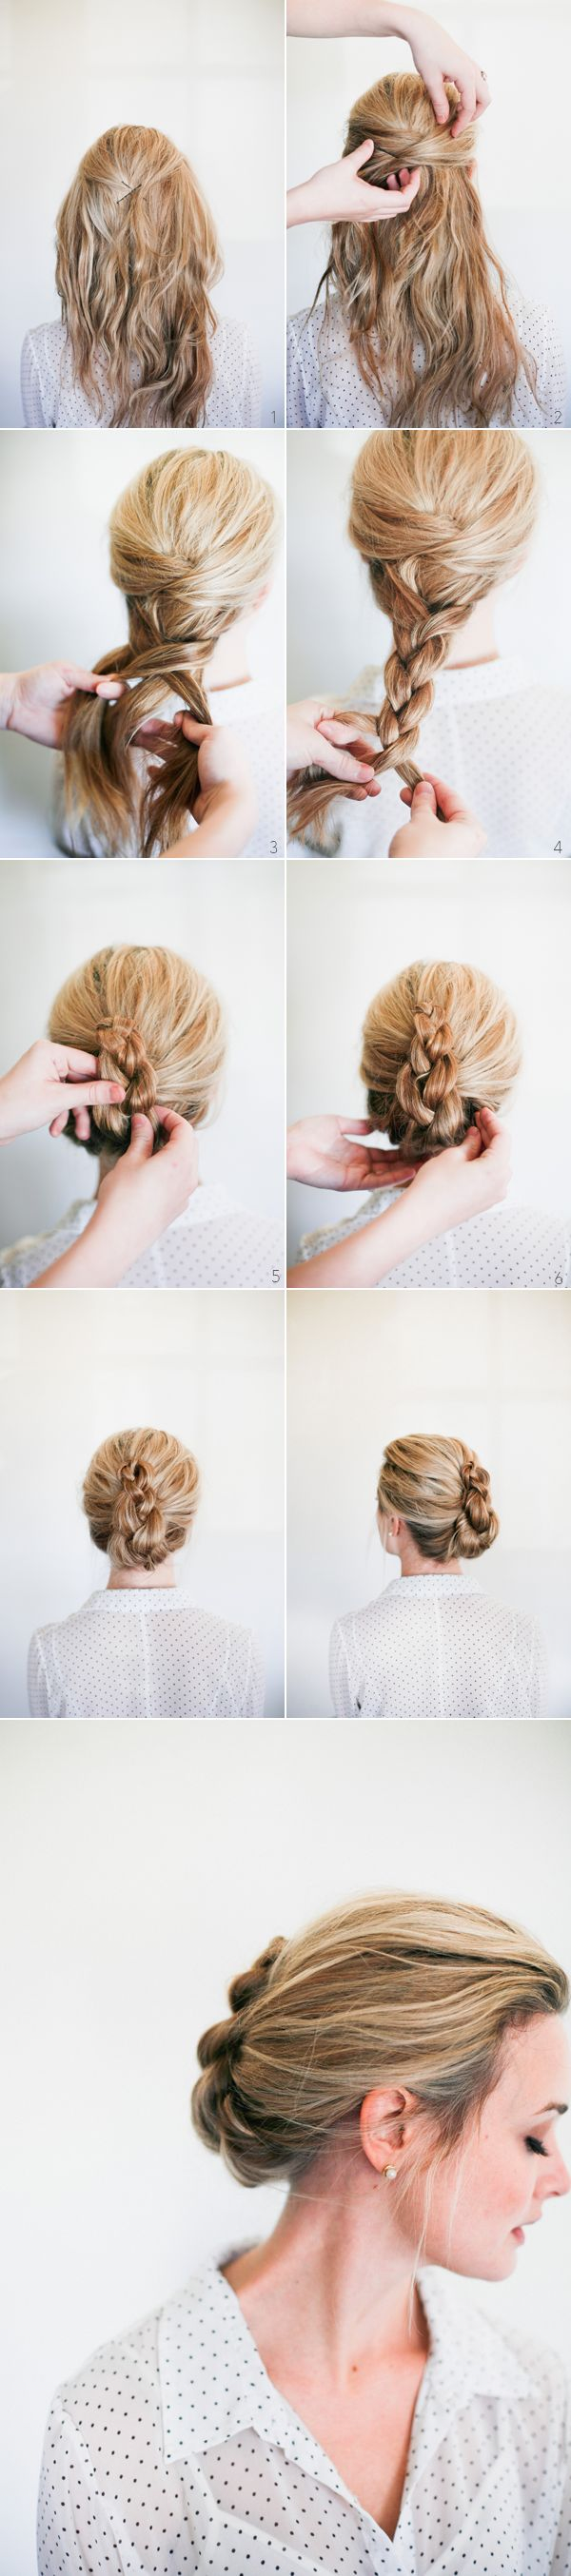 French braided twist - 20 Cute and Easy Hairstyle Ideas and Tutorials - cute!!